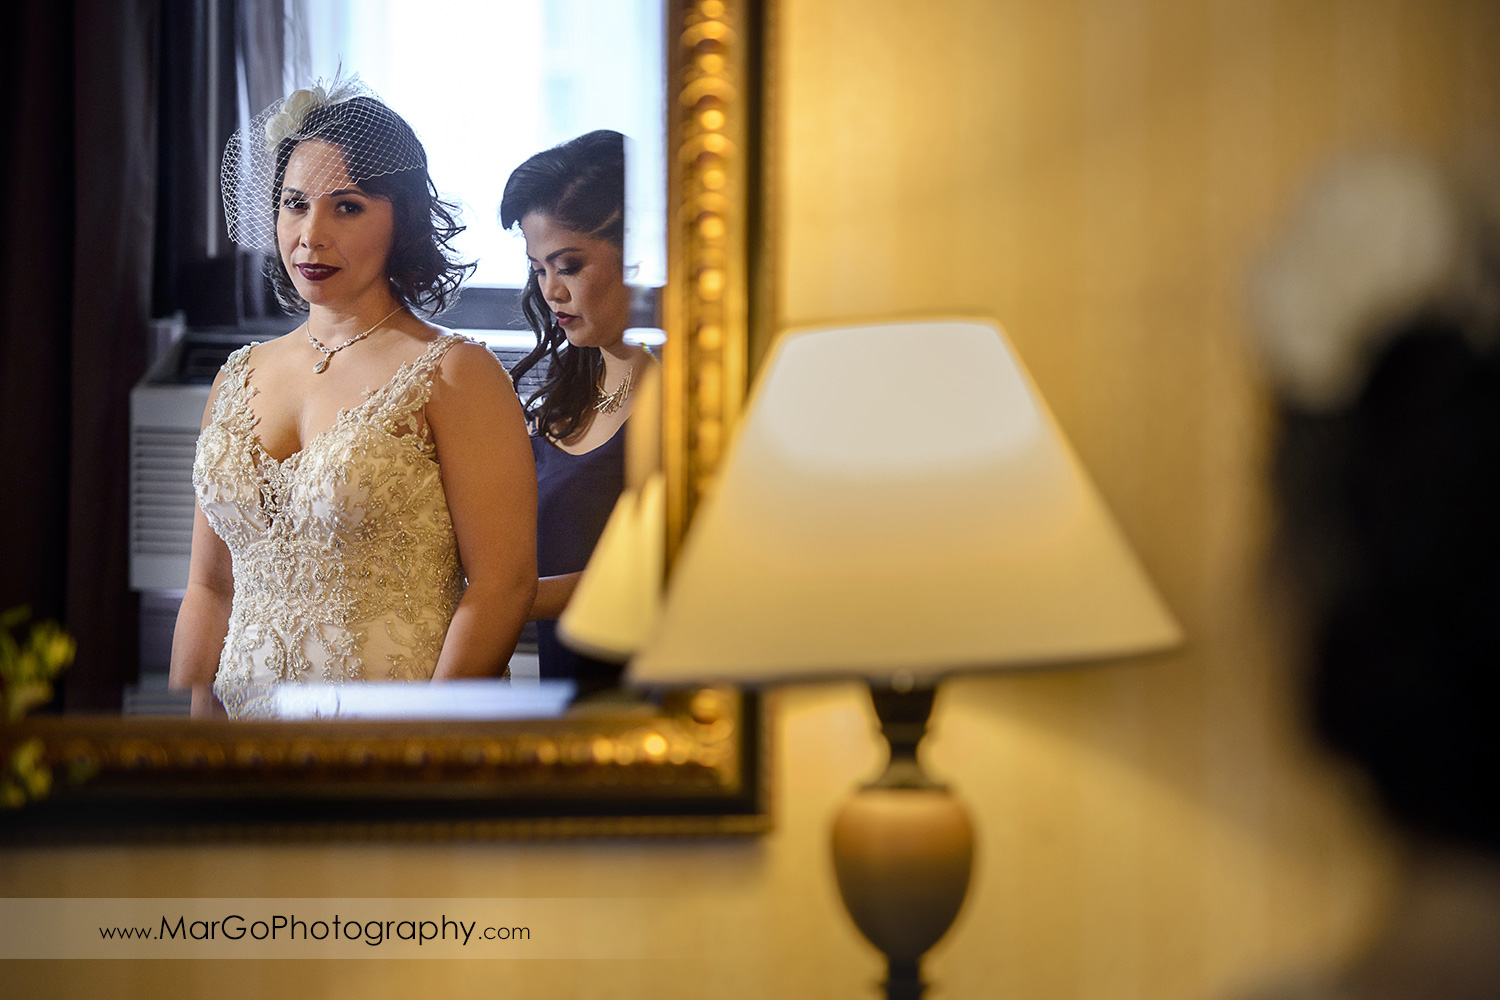 reflection of the bride getting ready at Whitcomb Hotel in San Francisco